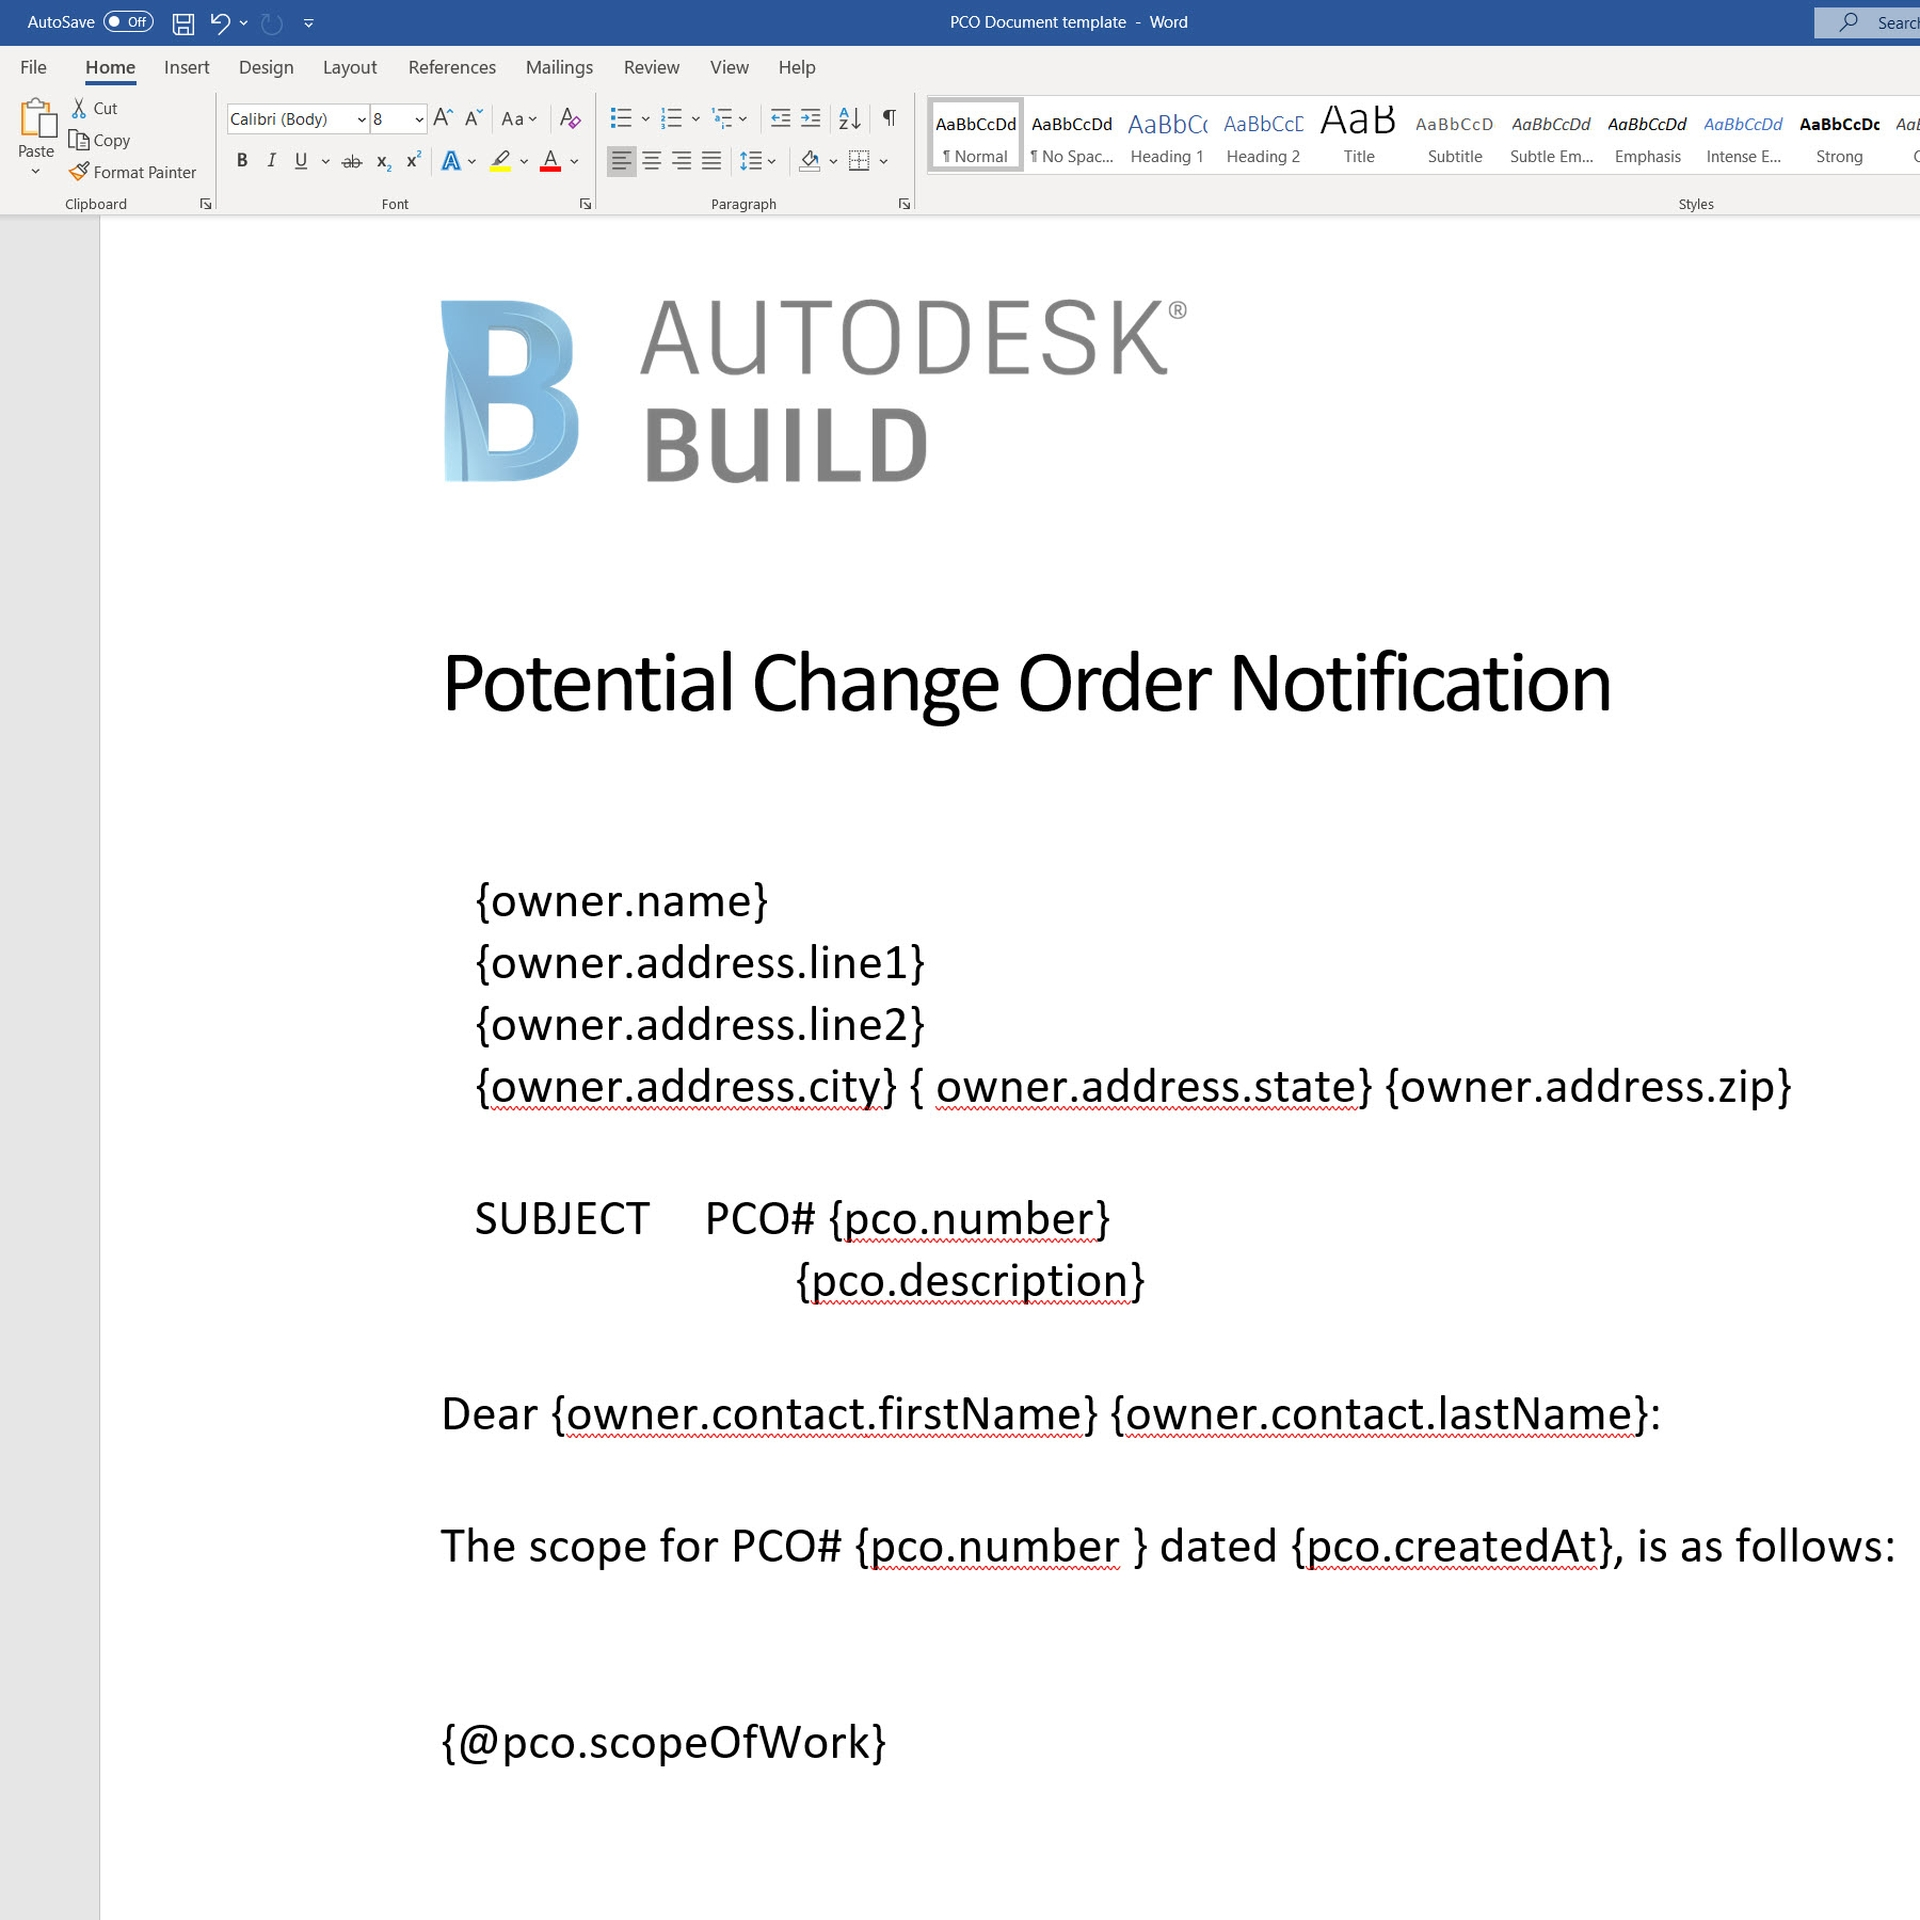 Construction change order documentation in Construction Change Order Tracking Software.